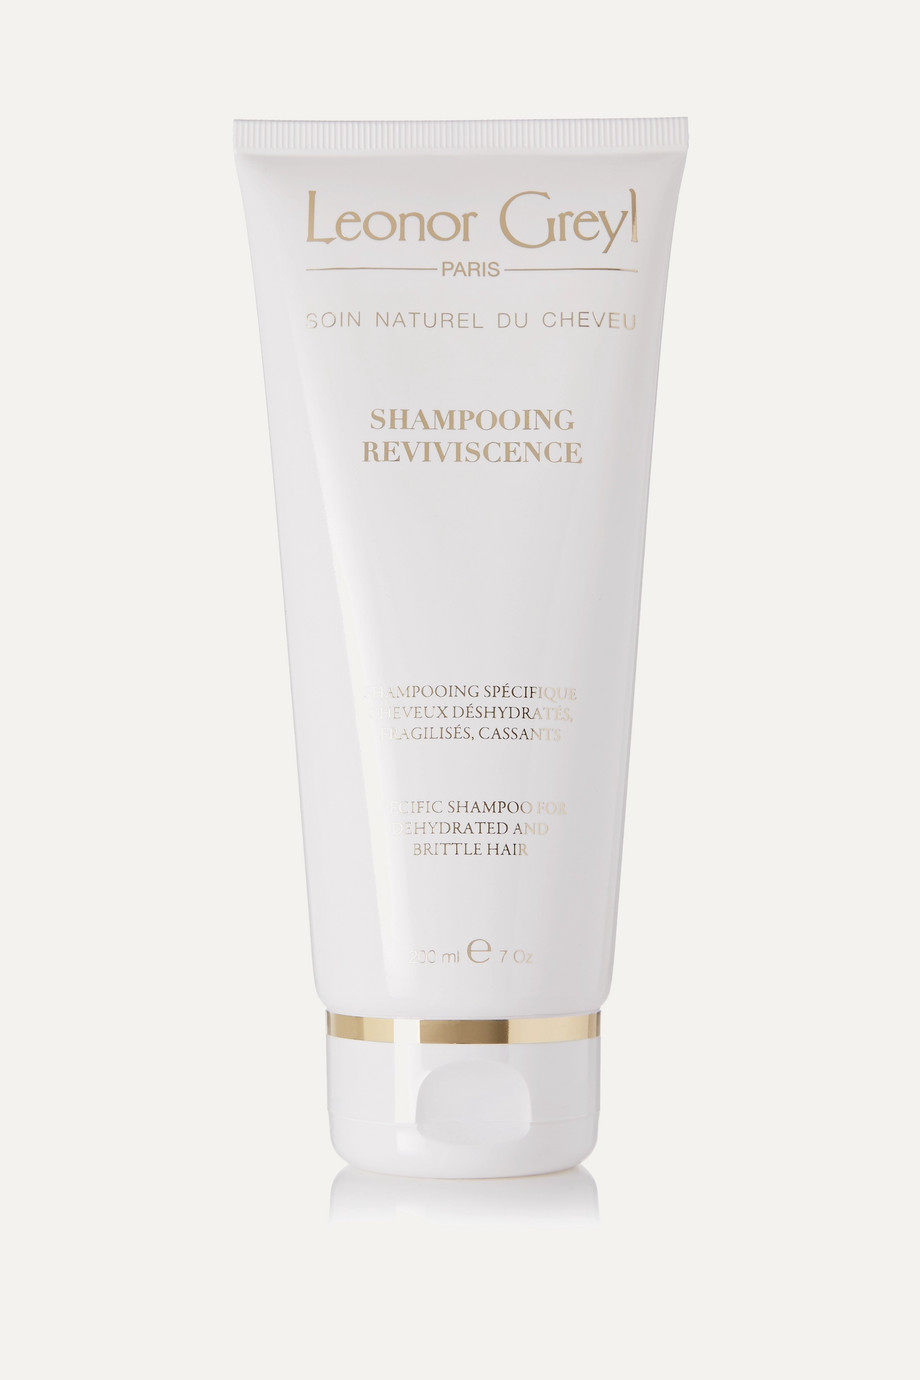 Leonor Greyl Paris Shampooing Reviviscence, 200ml